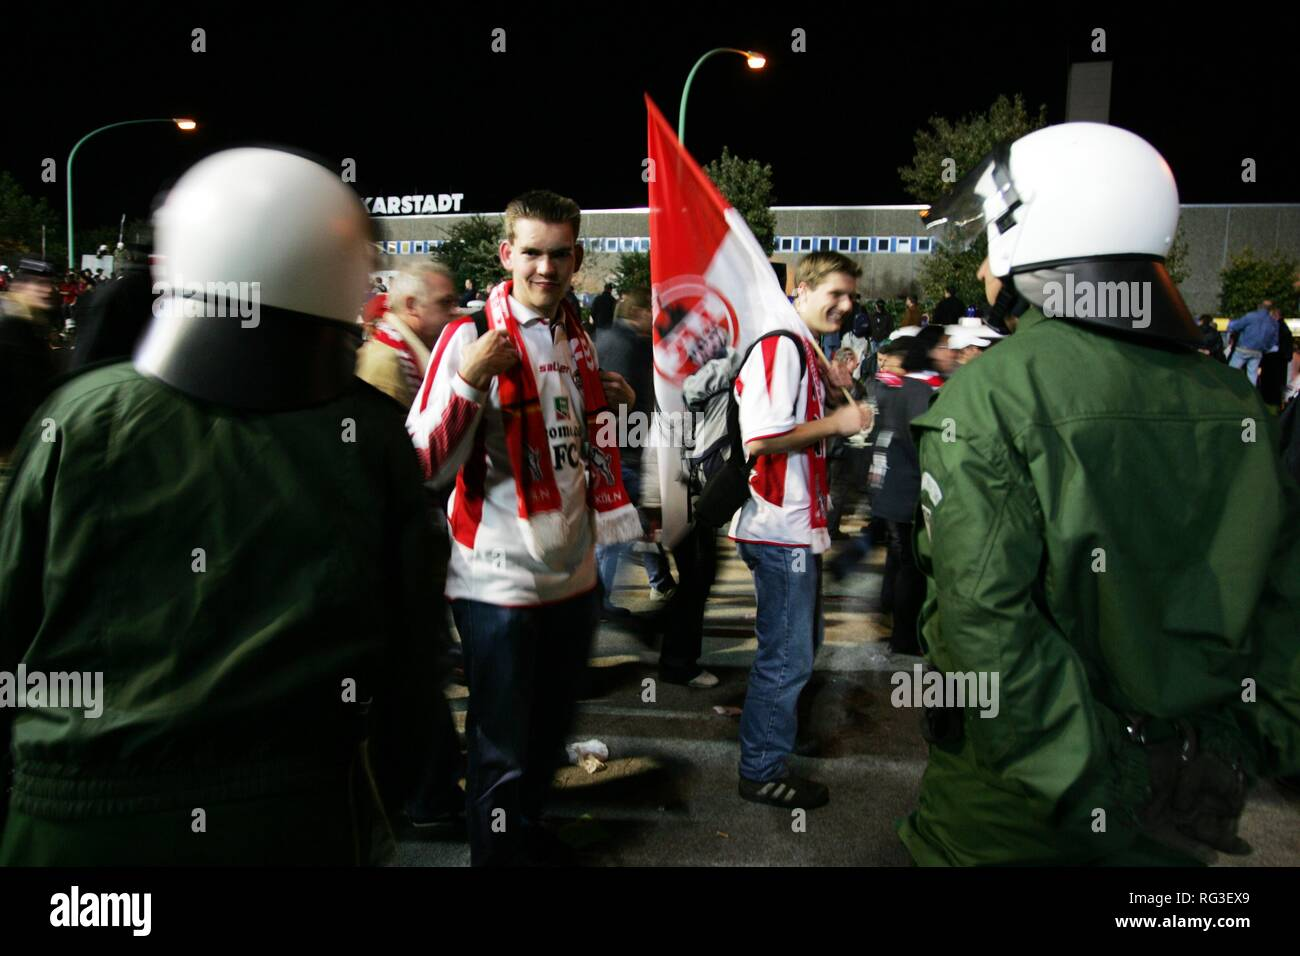 DEU, Germany, Essen : Football fans form the 1.FC Koeln club at a game in Essen against Rot-Weiss Essen. Police is escorting the Stock Photo